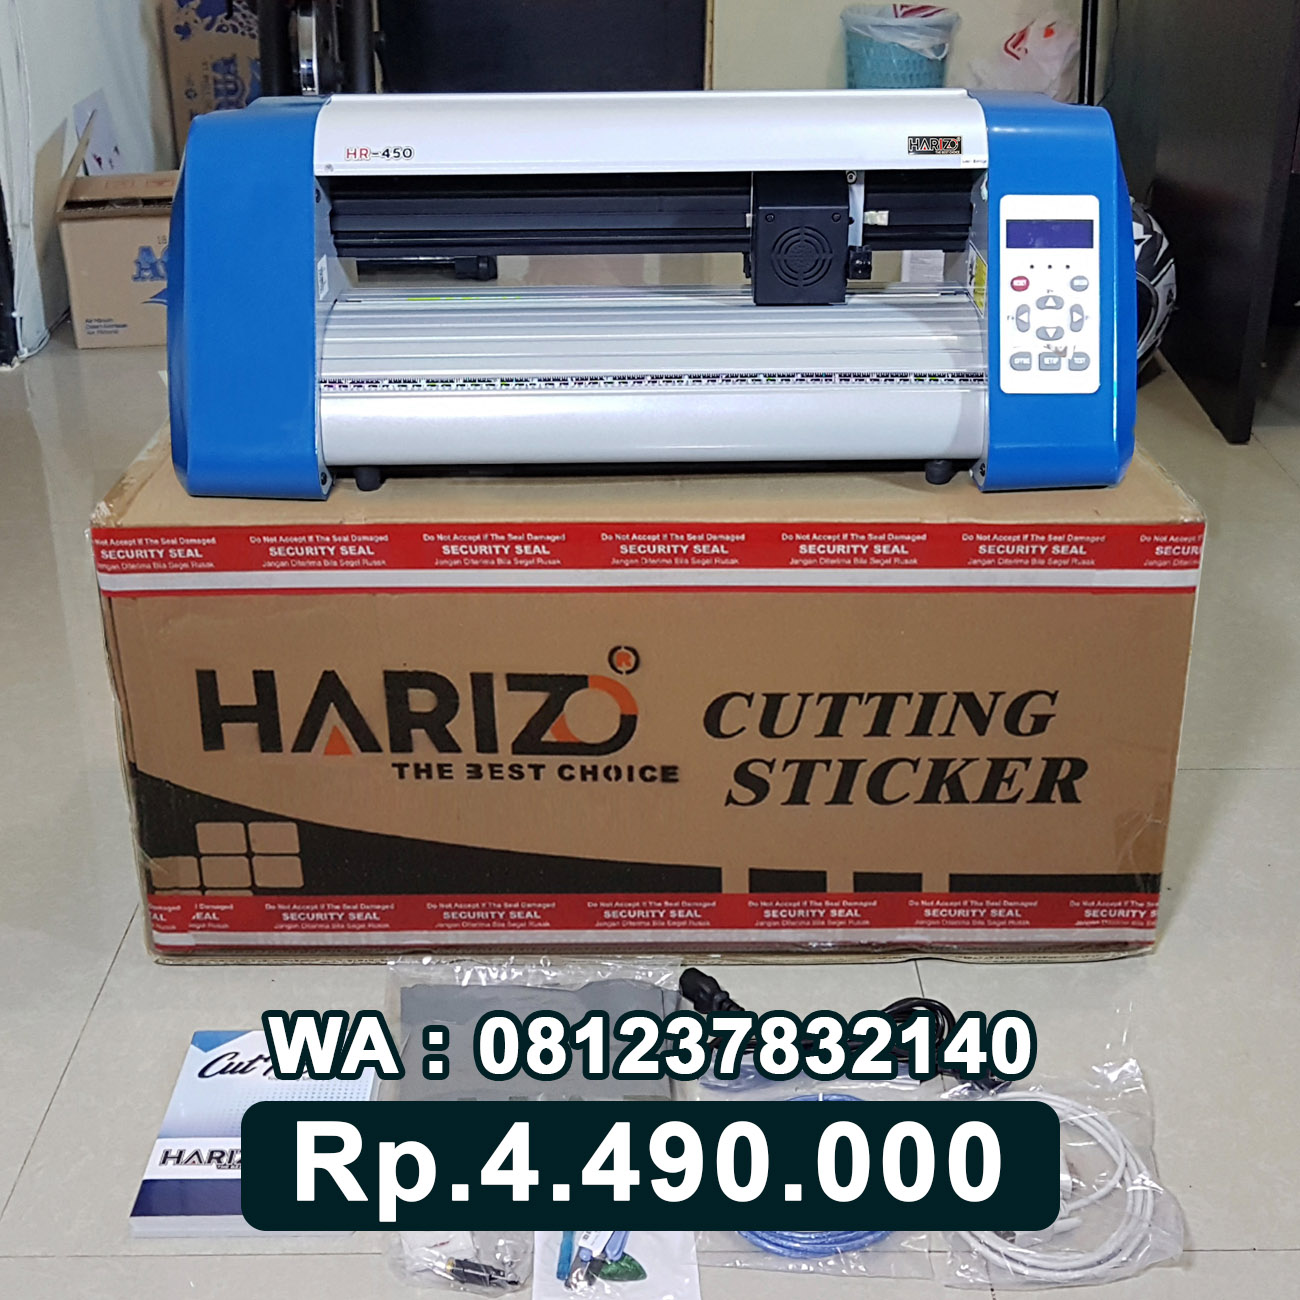 JUAL MESIN CUTTING STICKER HARIZO 450 Larantuka